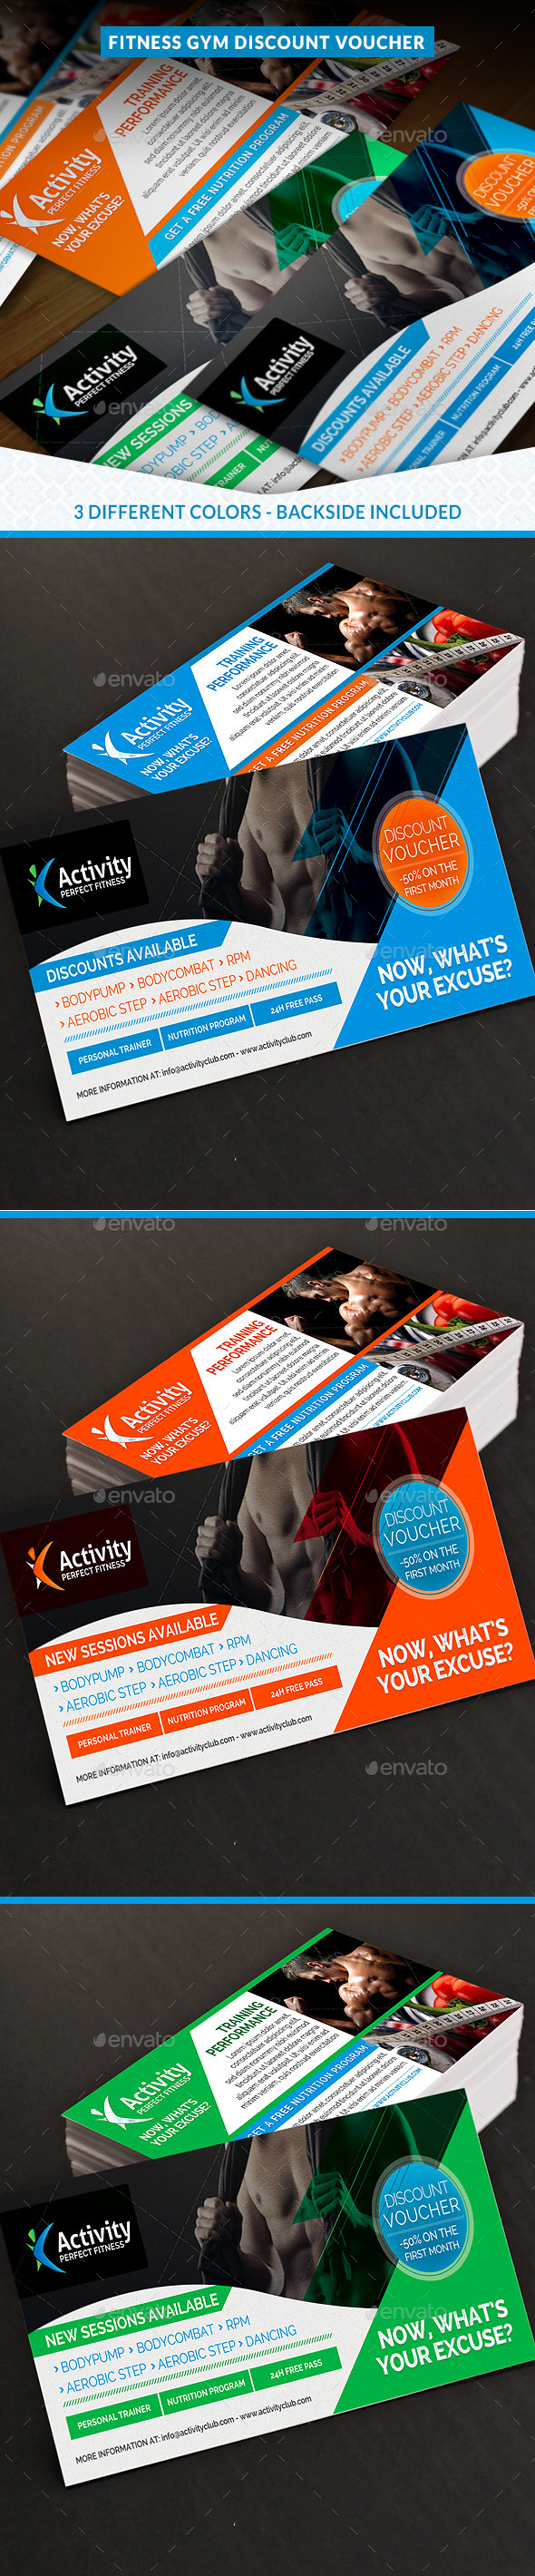 GraphicRiver Fitness and Gym Discount Voucher 11561447